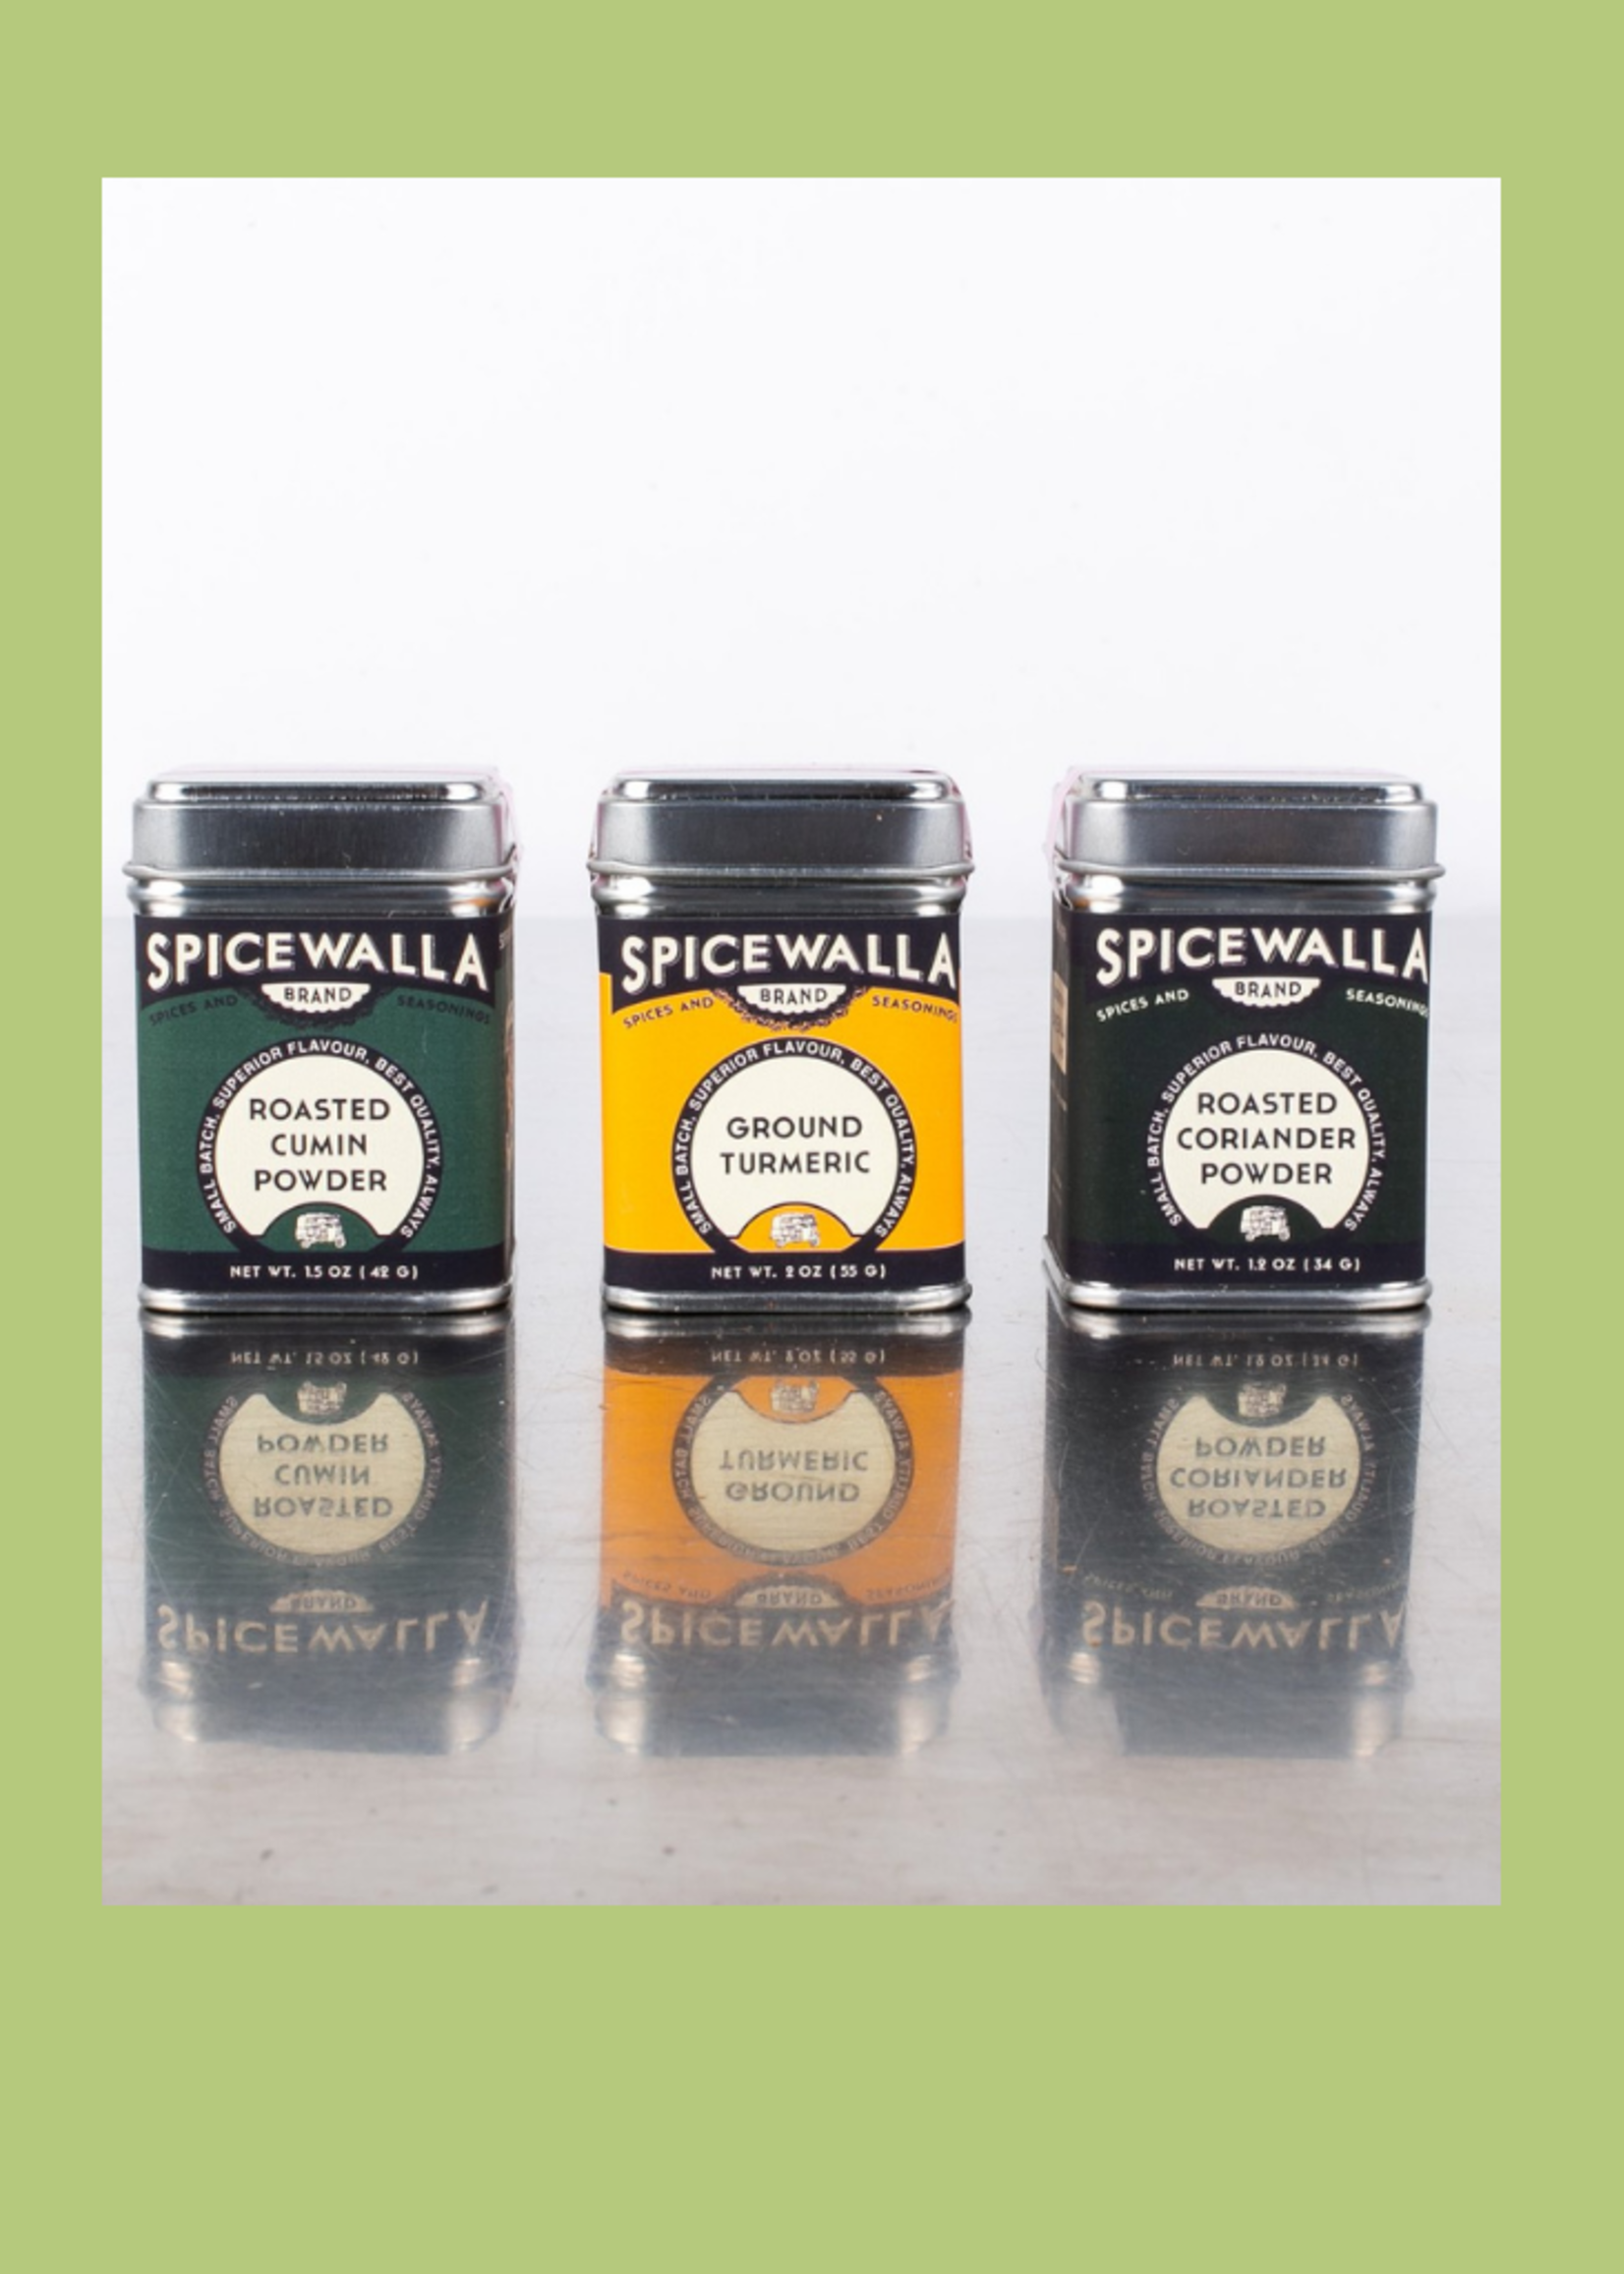 Spicewalla 3 Pack North Indian Spice Collection